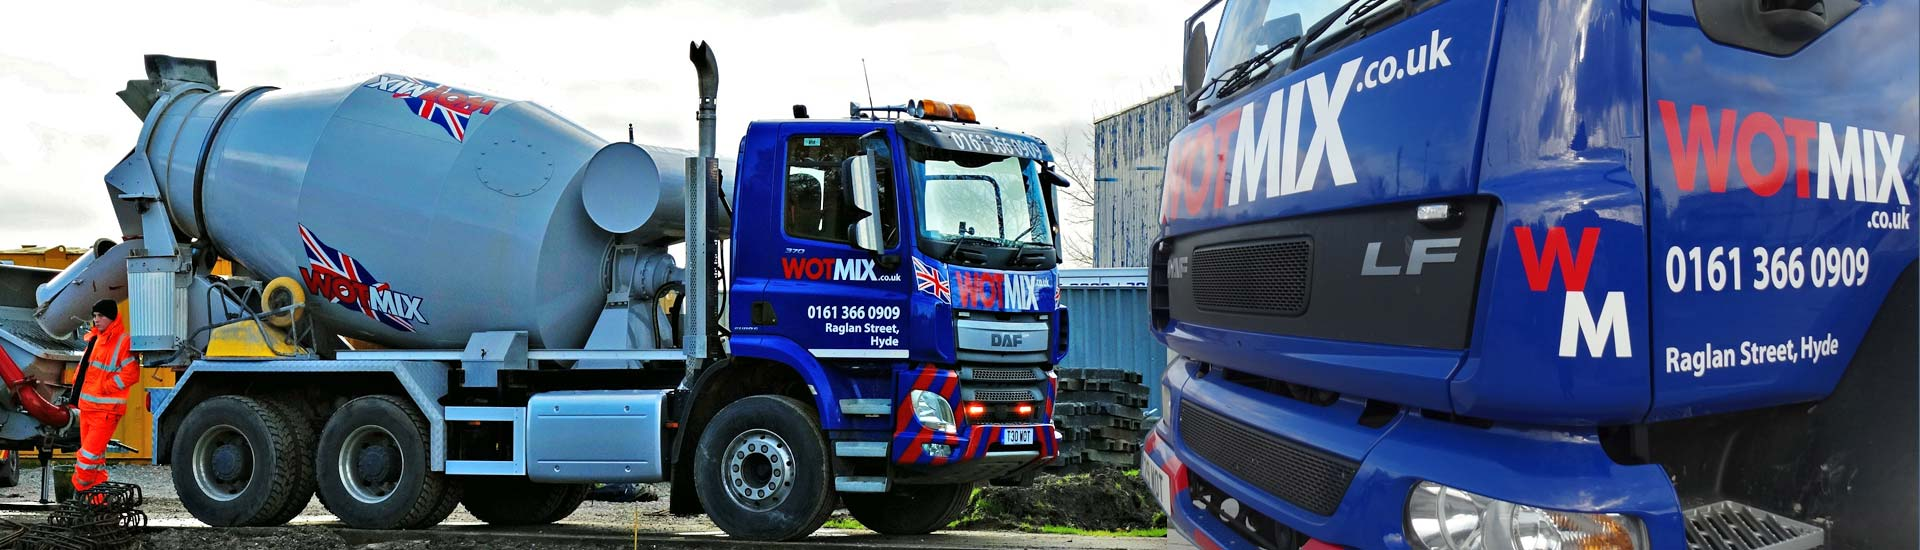 We Deliver Ready Mix Concrete to Manchester